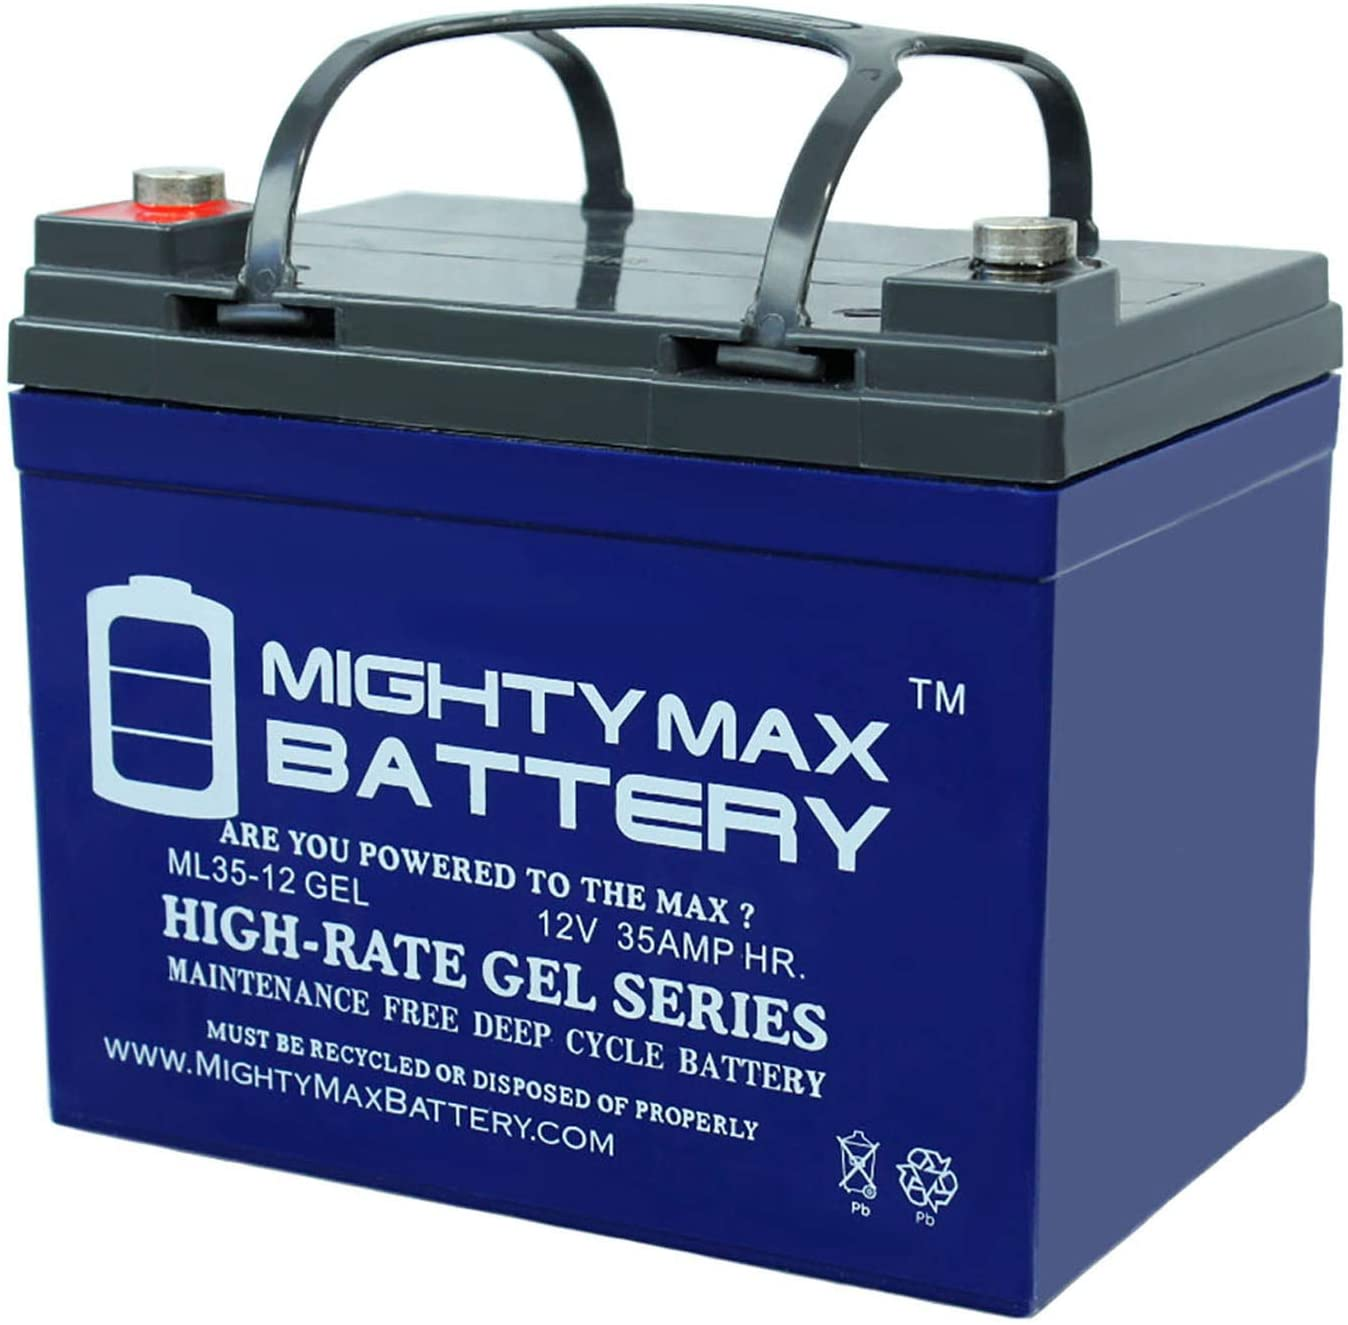 Mighty Max Battery 12V 35Ah Gel Battery Replacement for John Deere 425 Lawn and Garden Brand Product